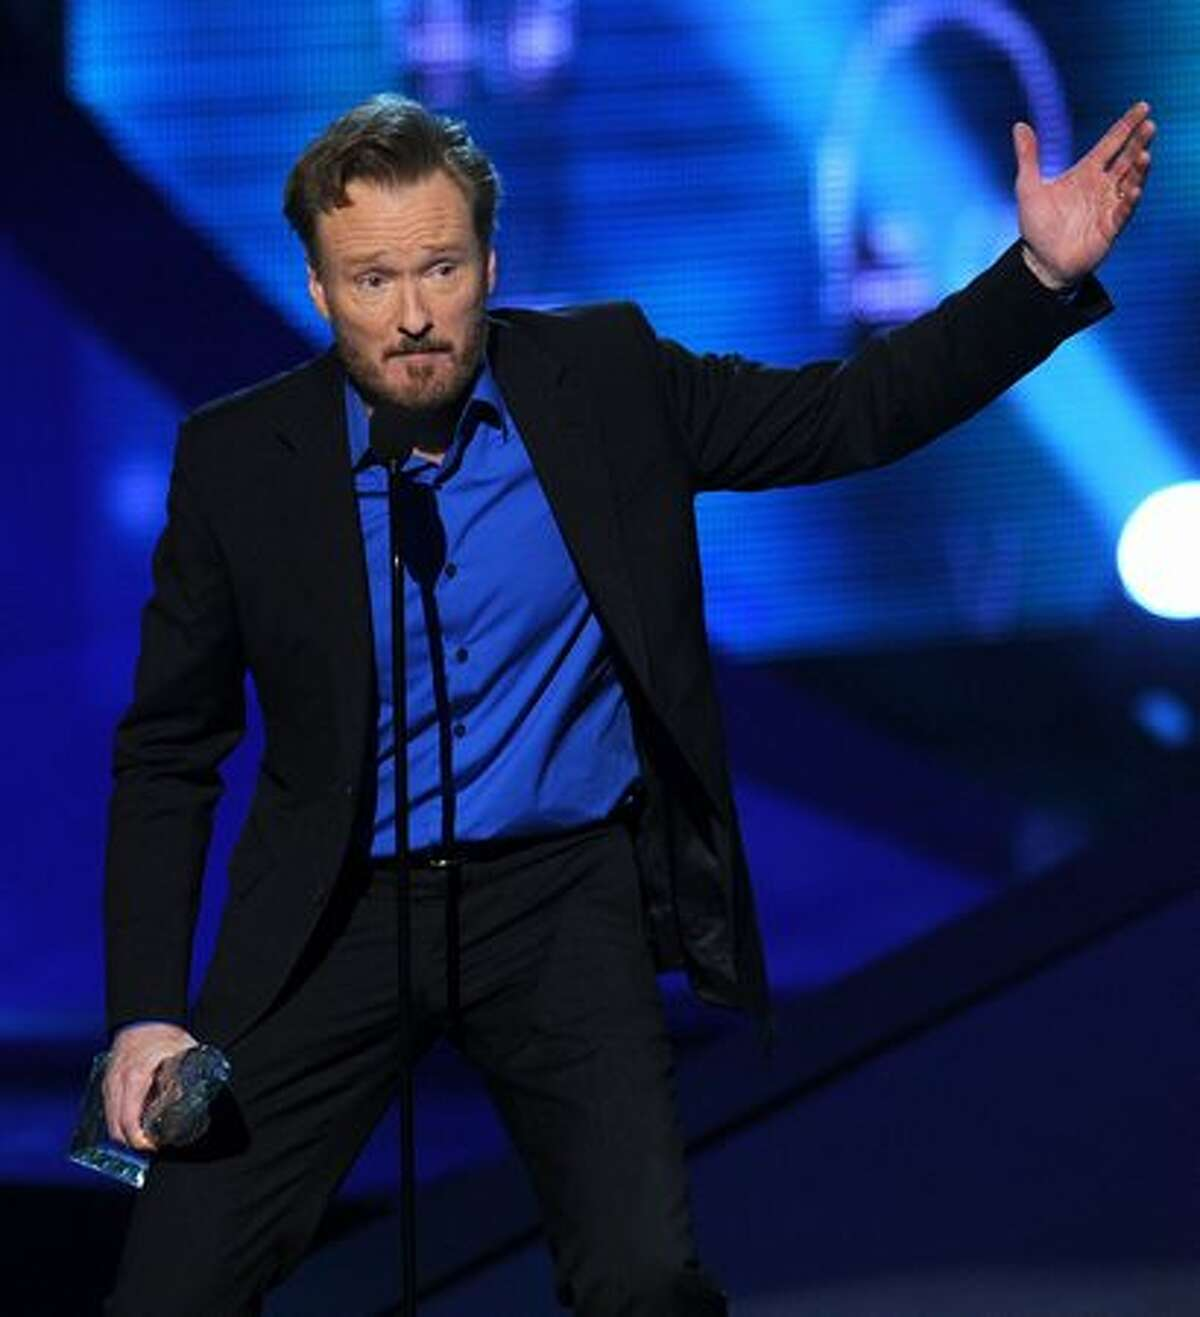 TV personality Conan O'Brien accepts the Favorite Talk Show Host award onstage during the 2011 People's Choice Awards at Nokia Theatre L.A. Live in Los Angeles, California.